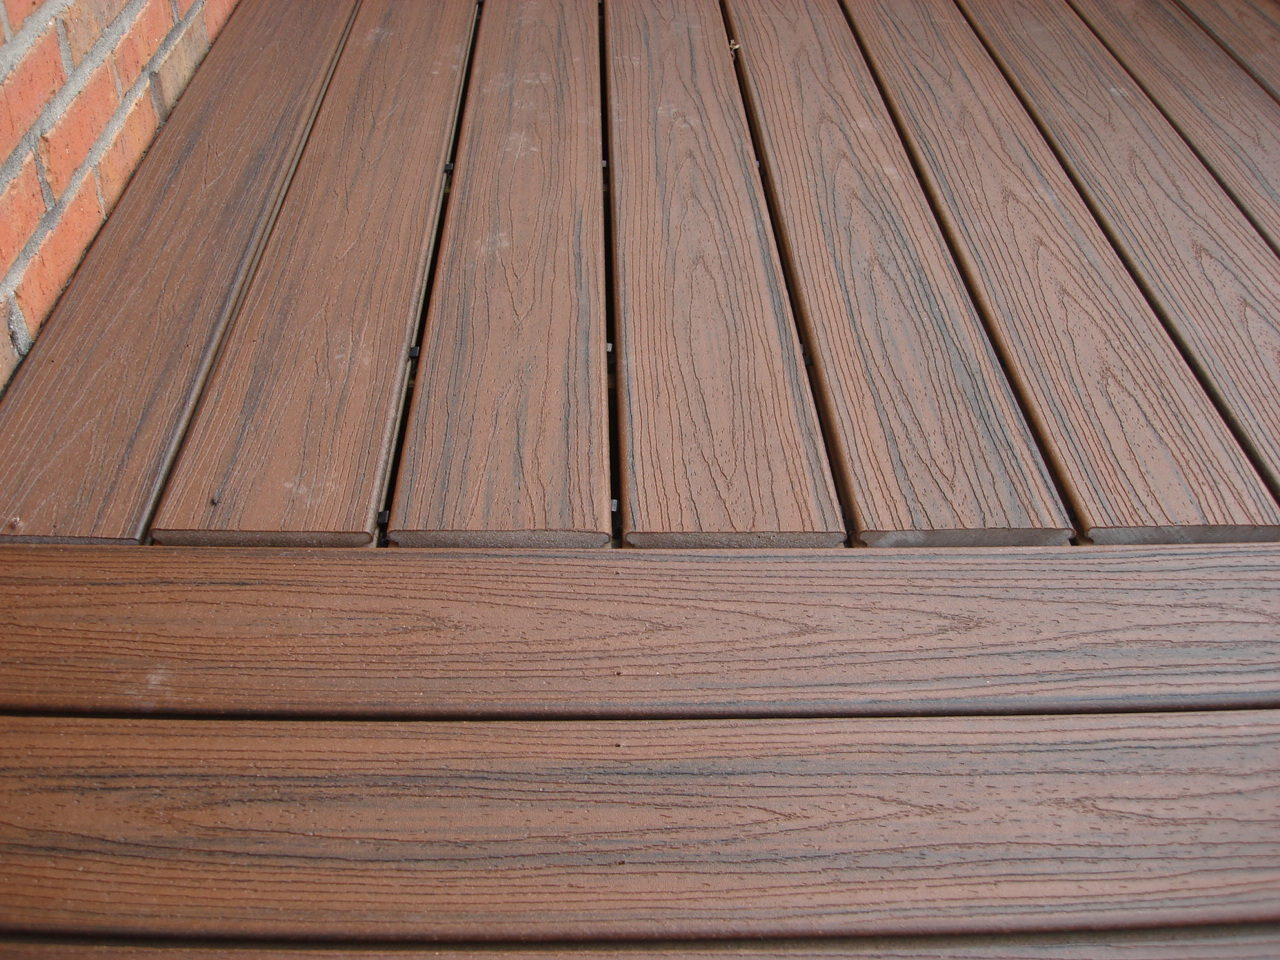 Decking Home Depot | Composite Trim Boards Home Depot | Veranda Composite Decking